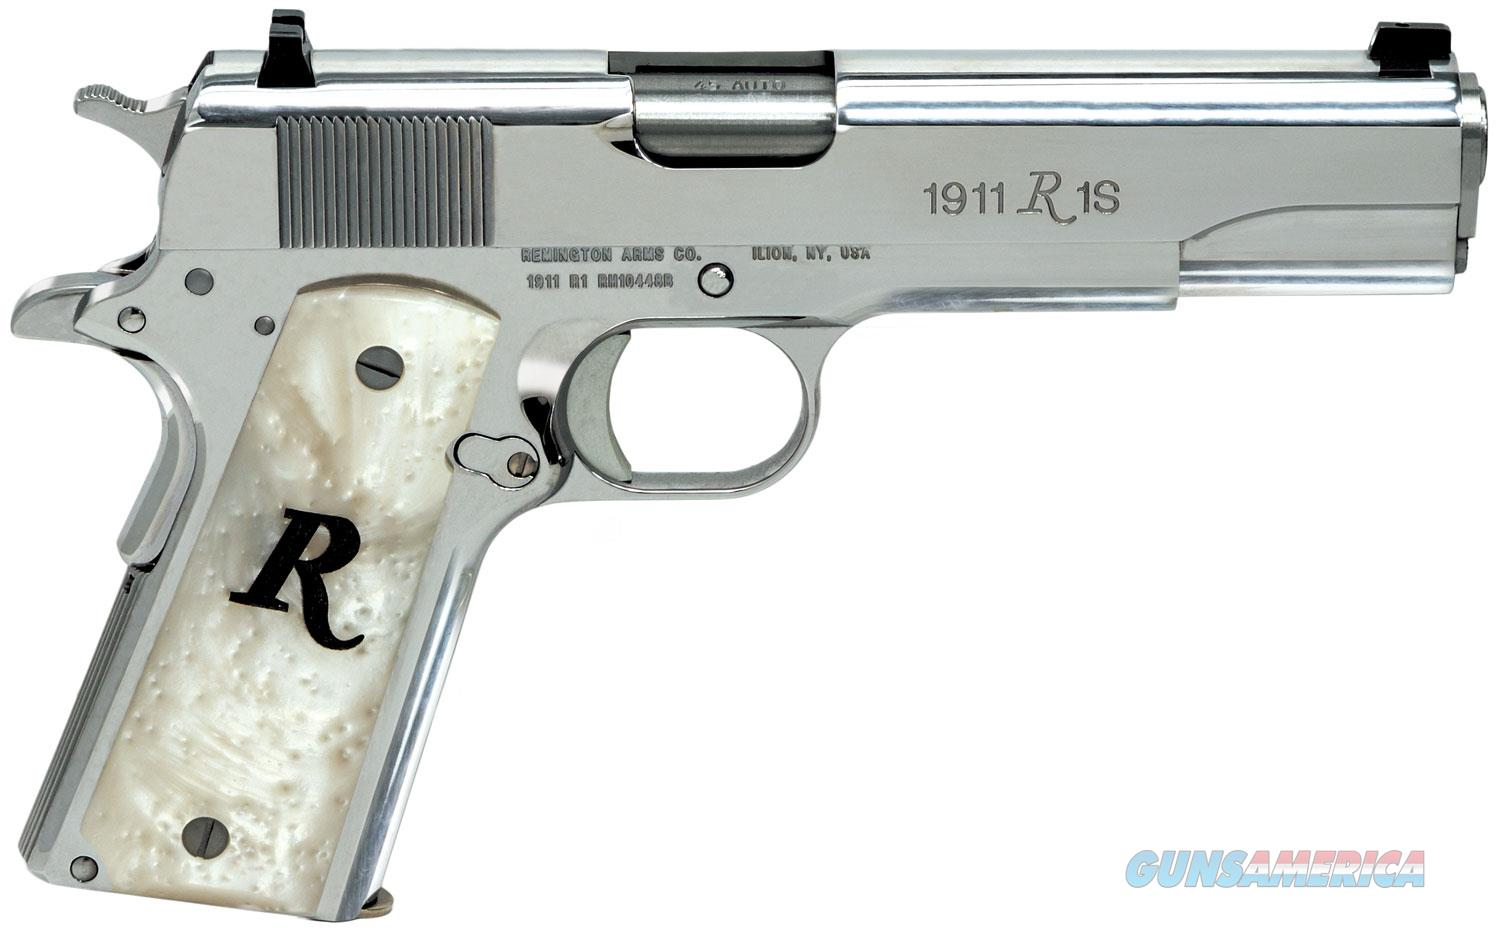 "Remington 1911 R1 High Polish Stainless 45 acp 5"" 7+1 White Synthetic Pearl Grip ""NO CREDIT CARD FEE""  Guns > Pistols > Remington Pistols - Modern > 1911"